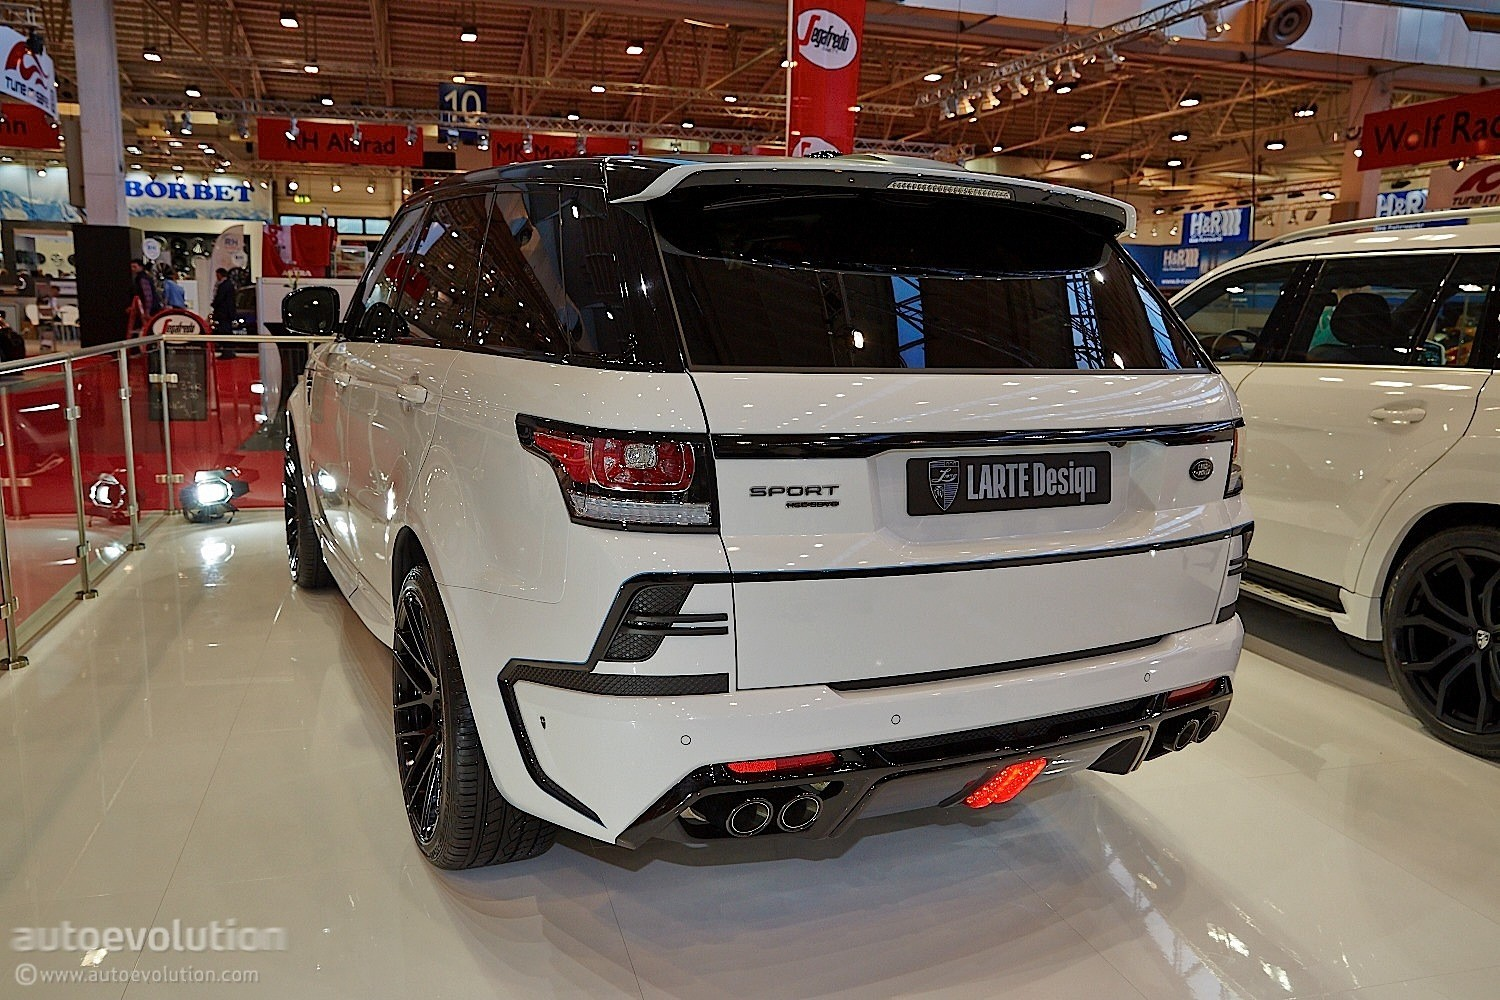 http://s1.cdn.autoevolution.com/images/news/gallery/larthe-design-range-rover-sport-looks-like-its-been-drilled-essen-2014-live-photos_4.jpg